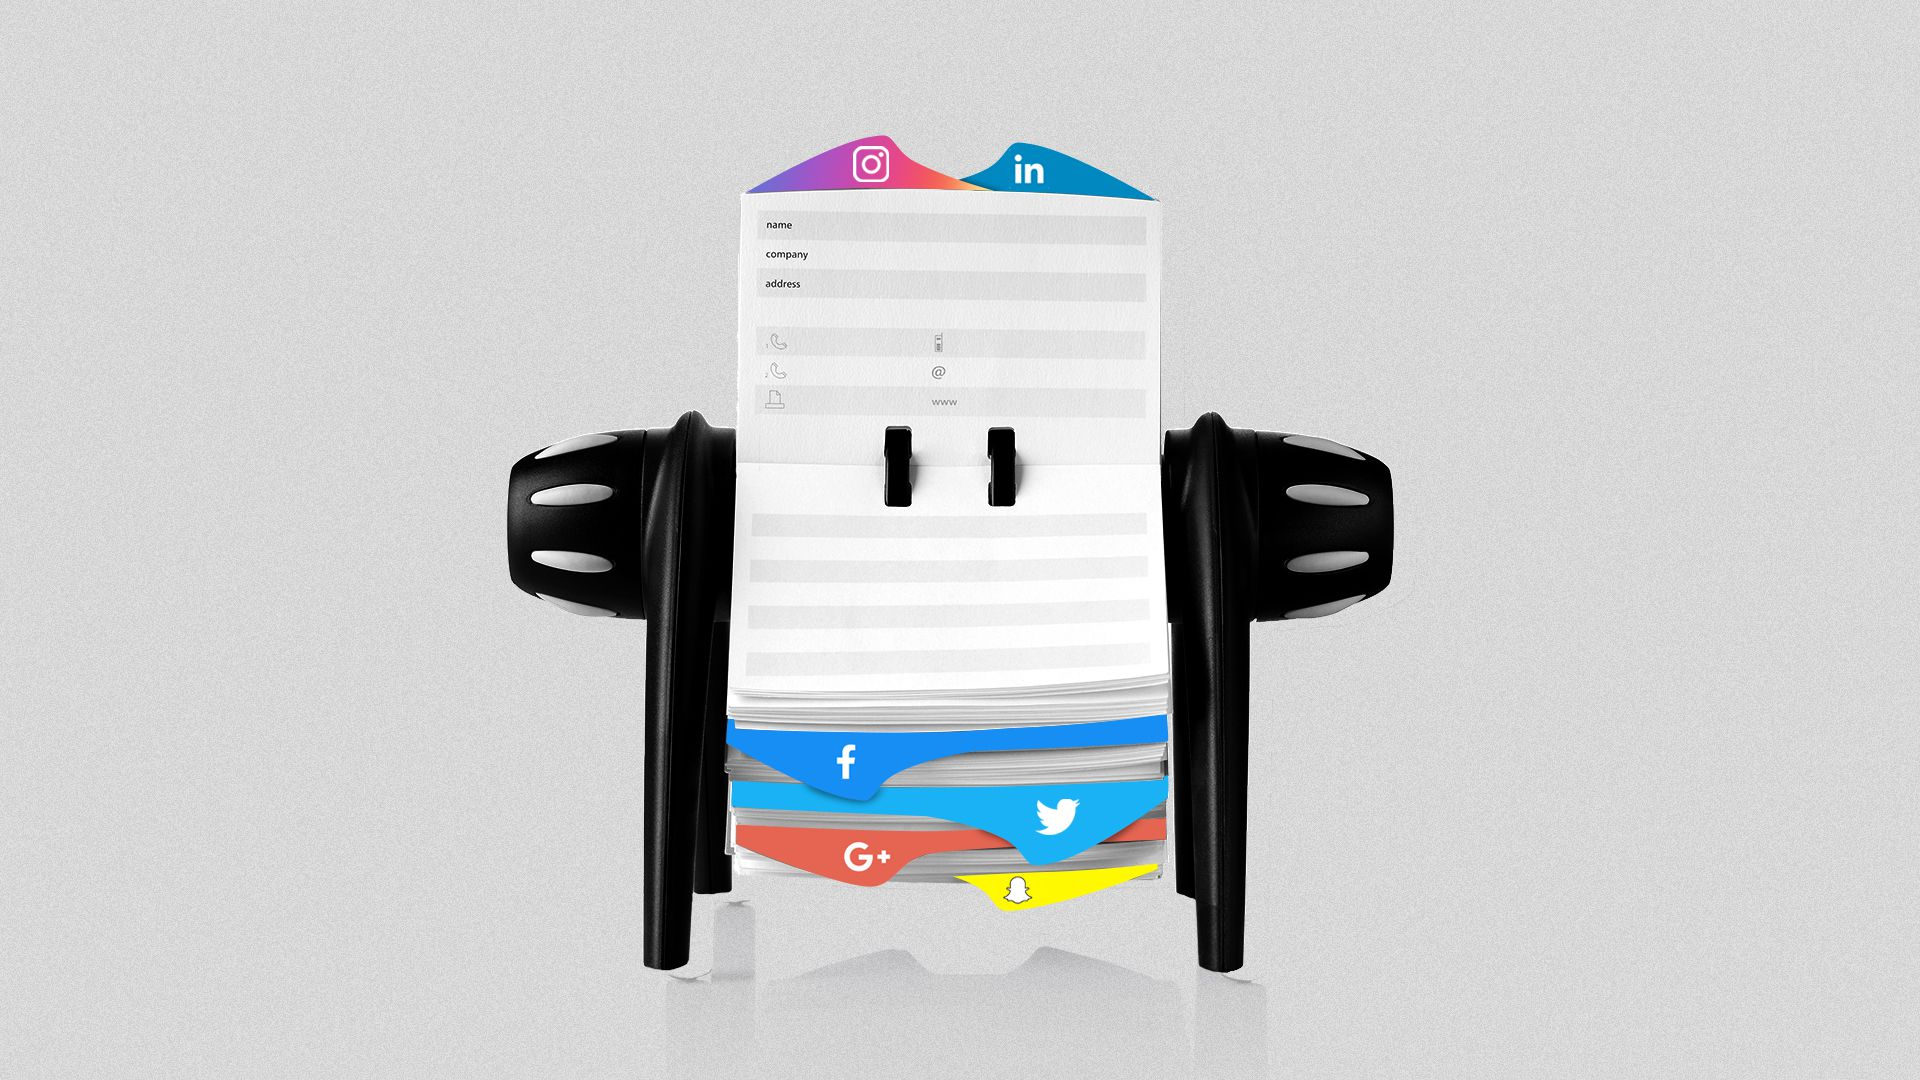 Illustration of a Rolodex with tabs indicating various social media apps.